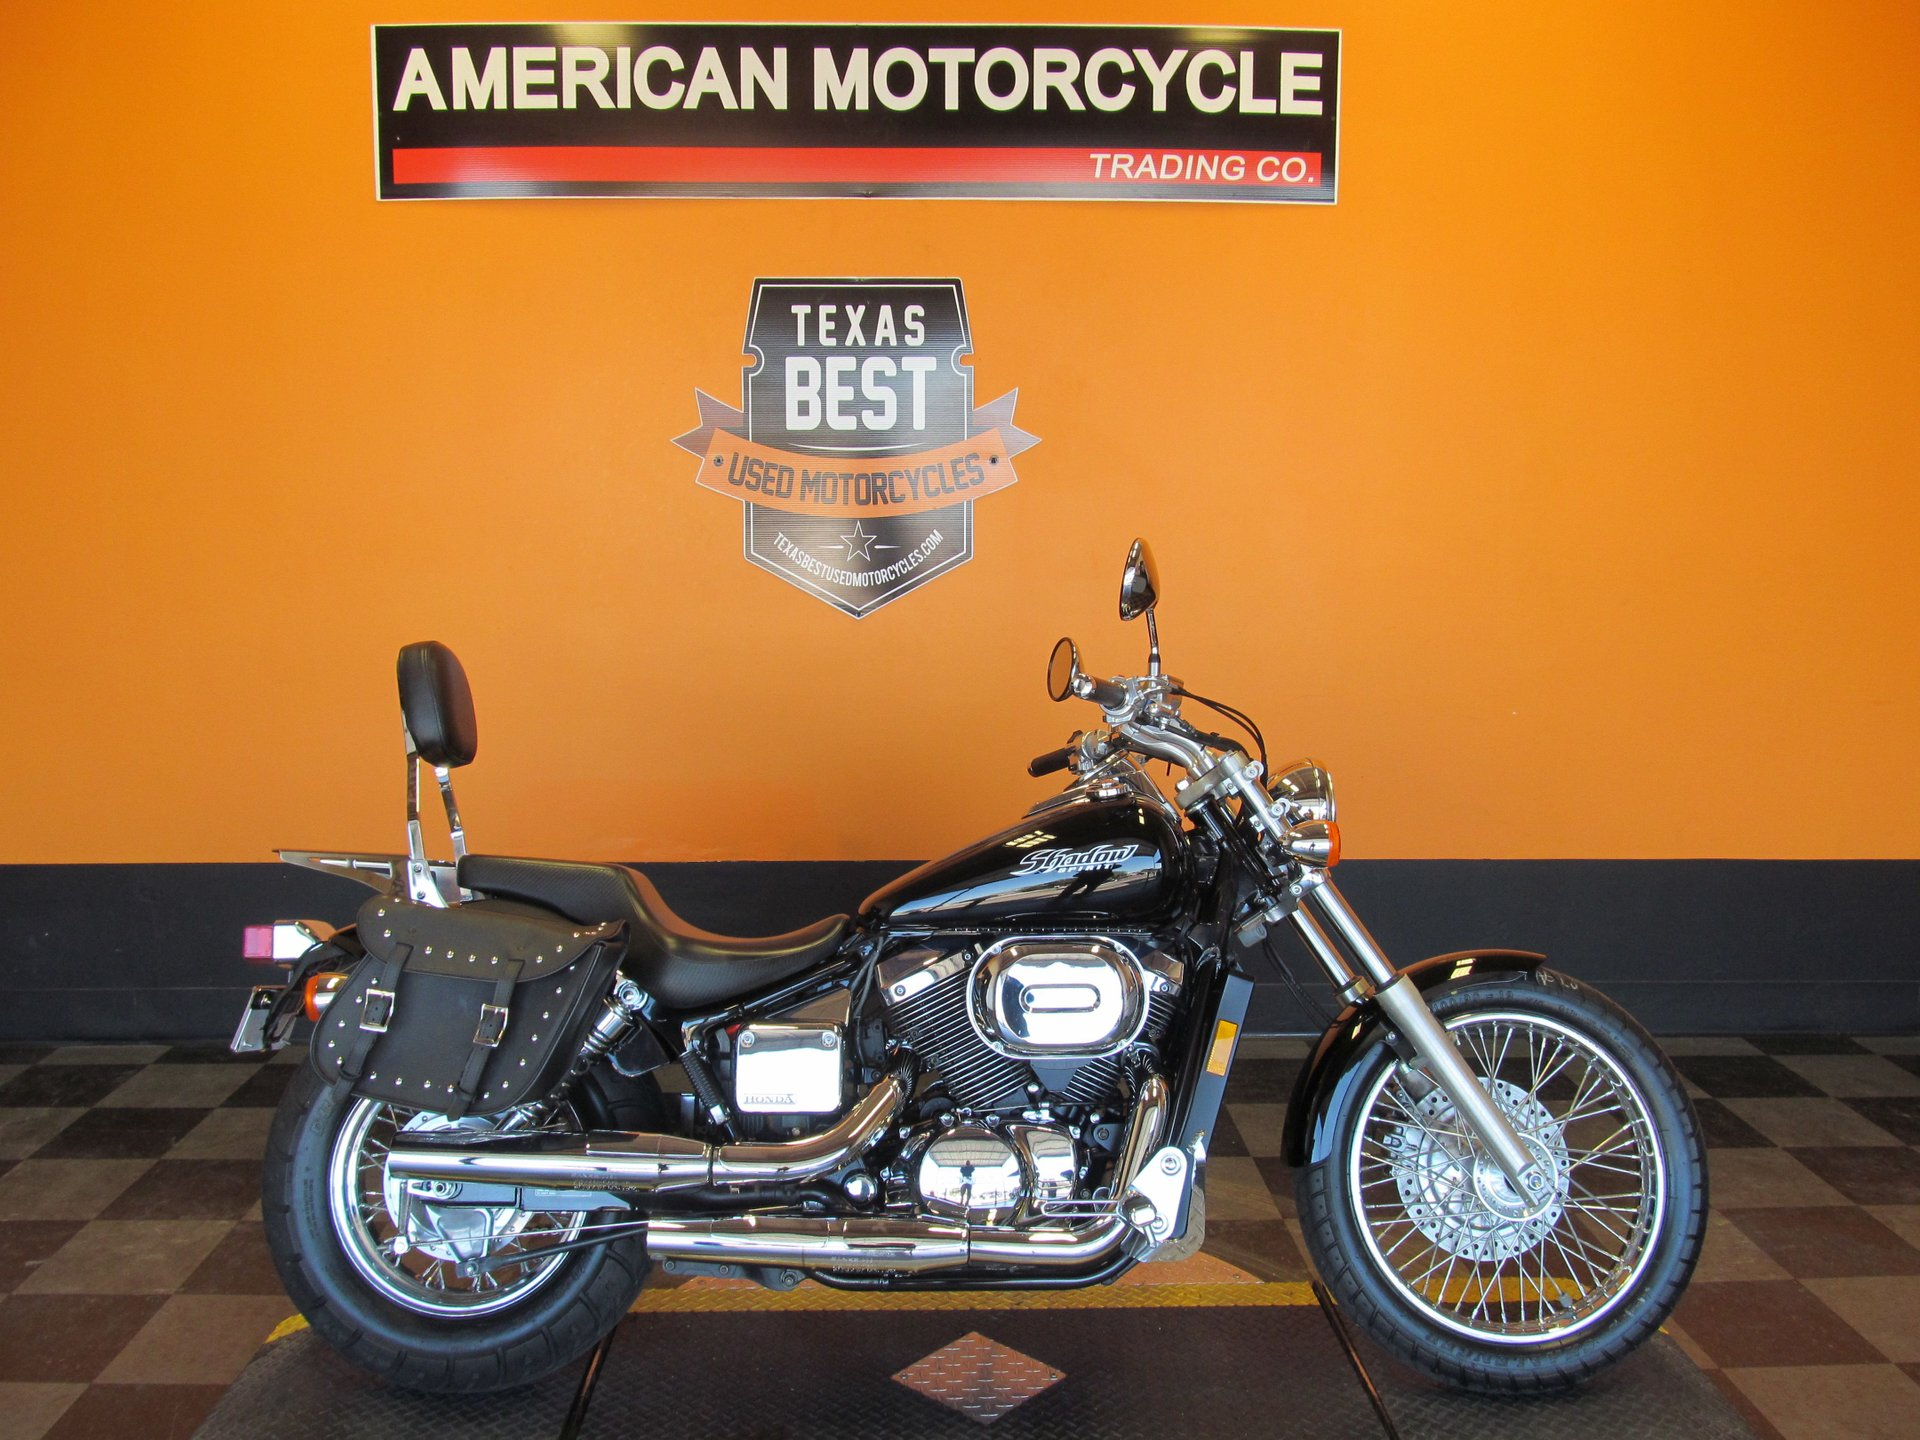 2007 honda shadow spirit vt750dca